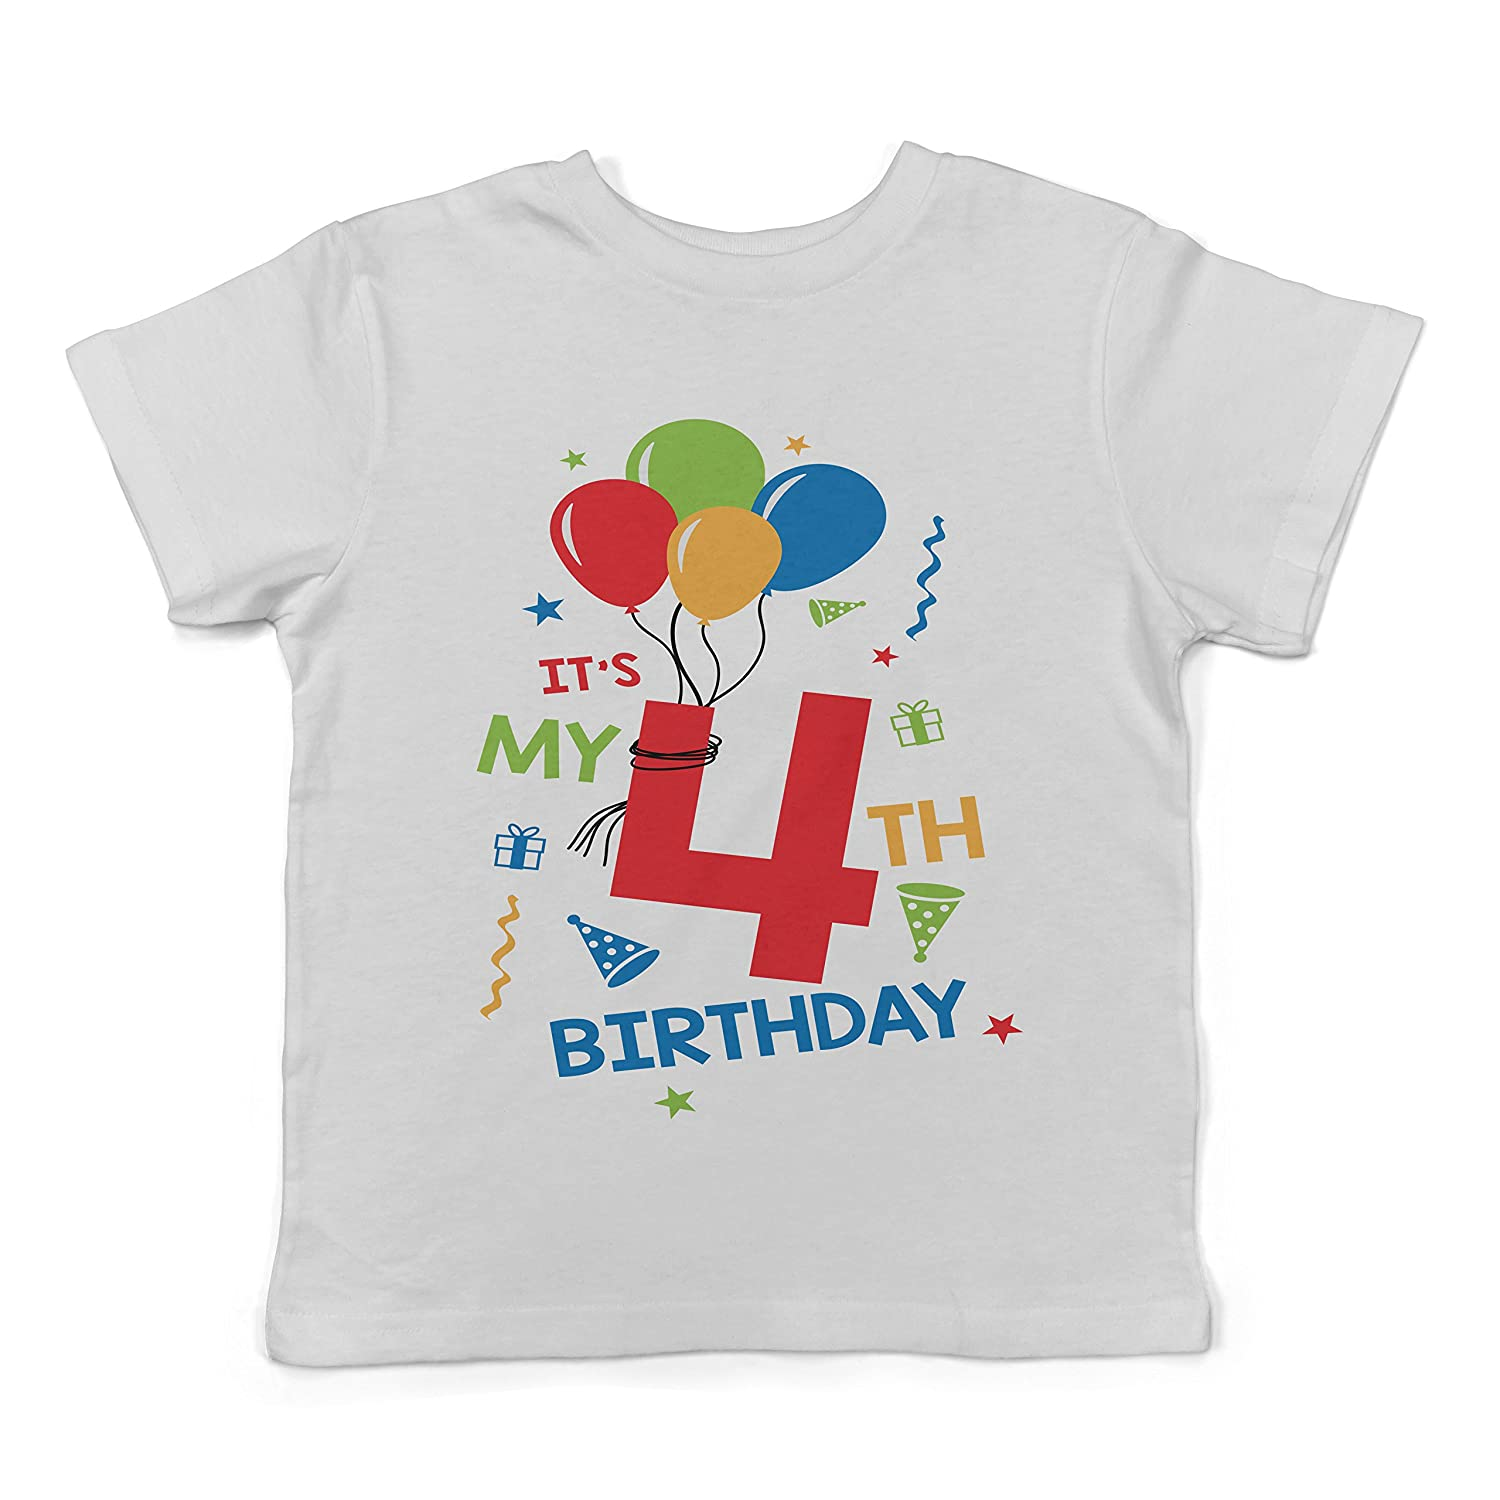 Lil Shirts It's My 4th Birthday Toddler T-Shirt